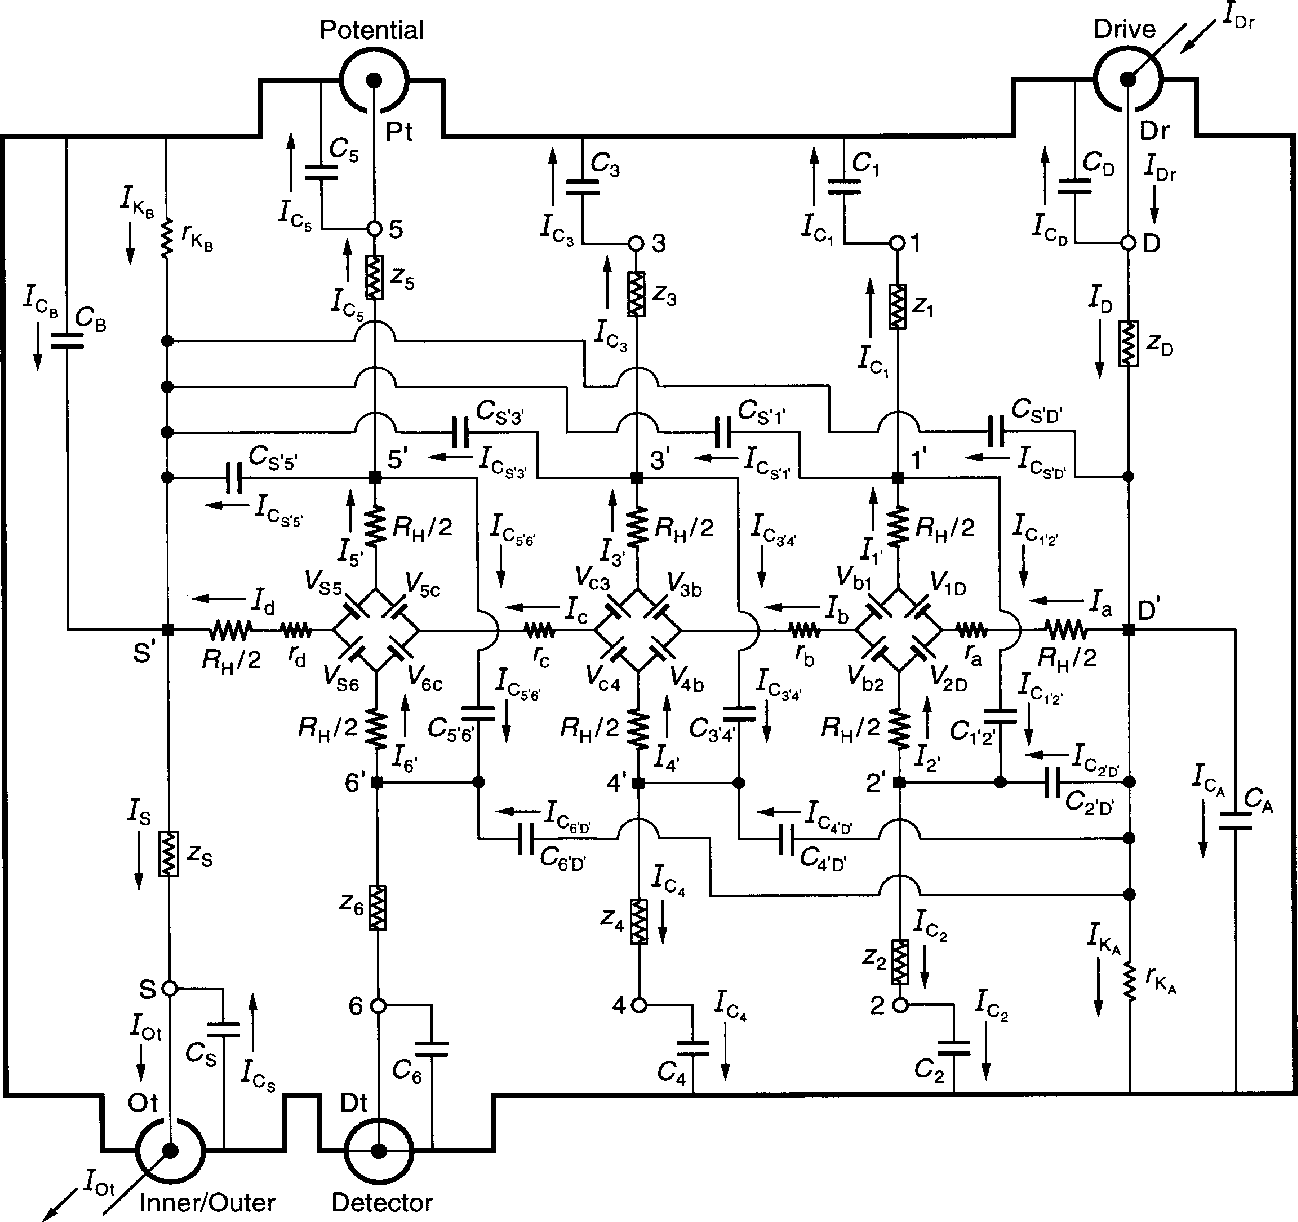 hight resolution of an equivalent electrical circuit representation of an ac qhe resistance standard with